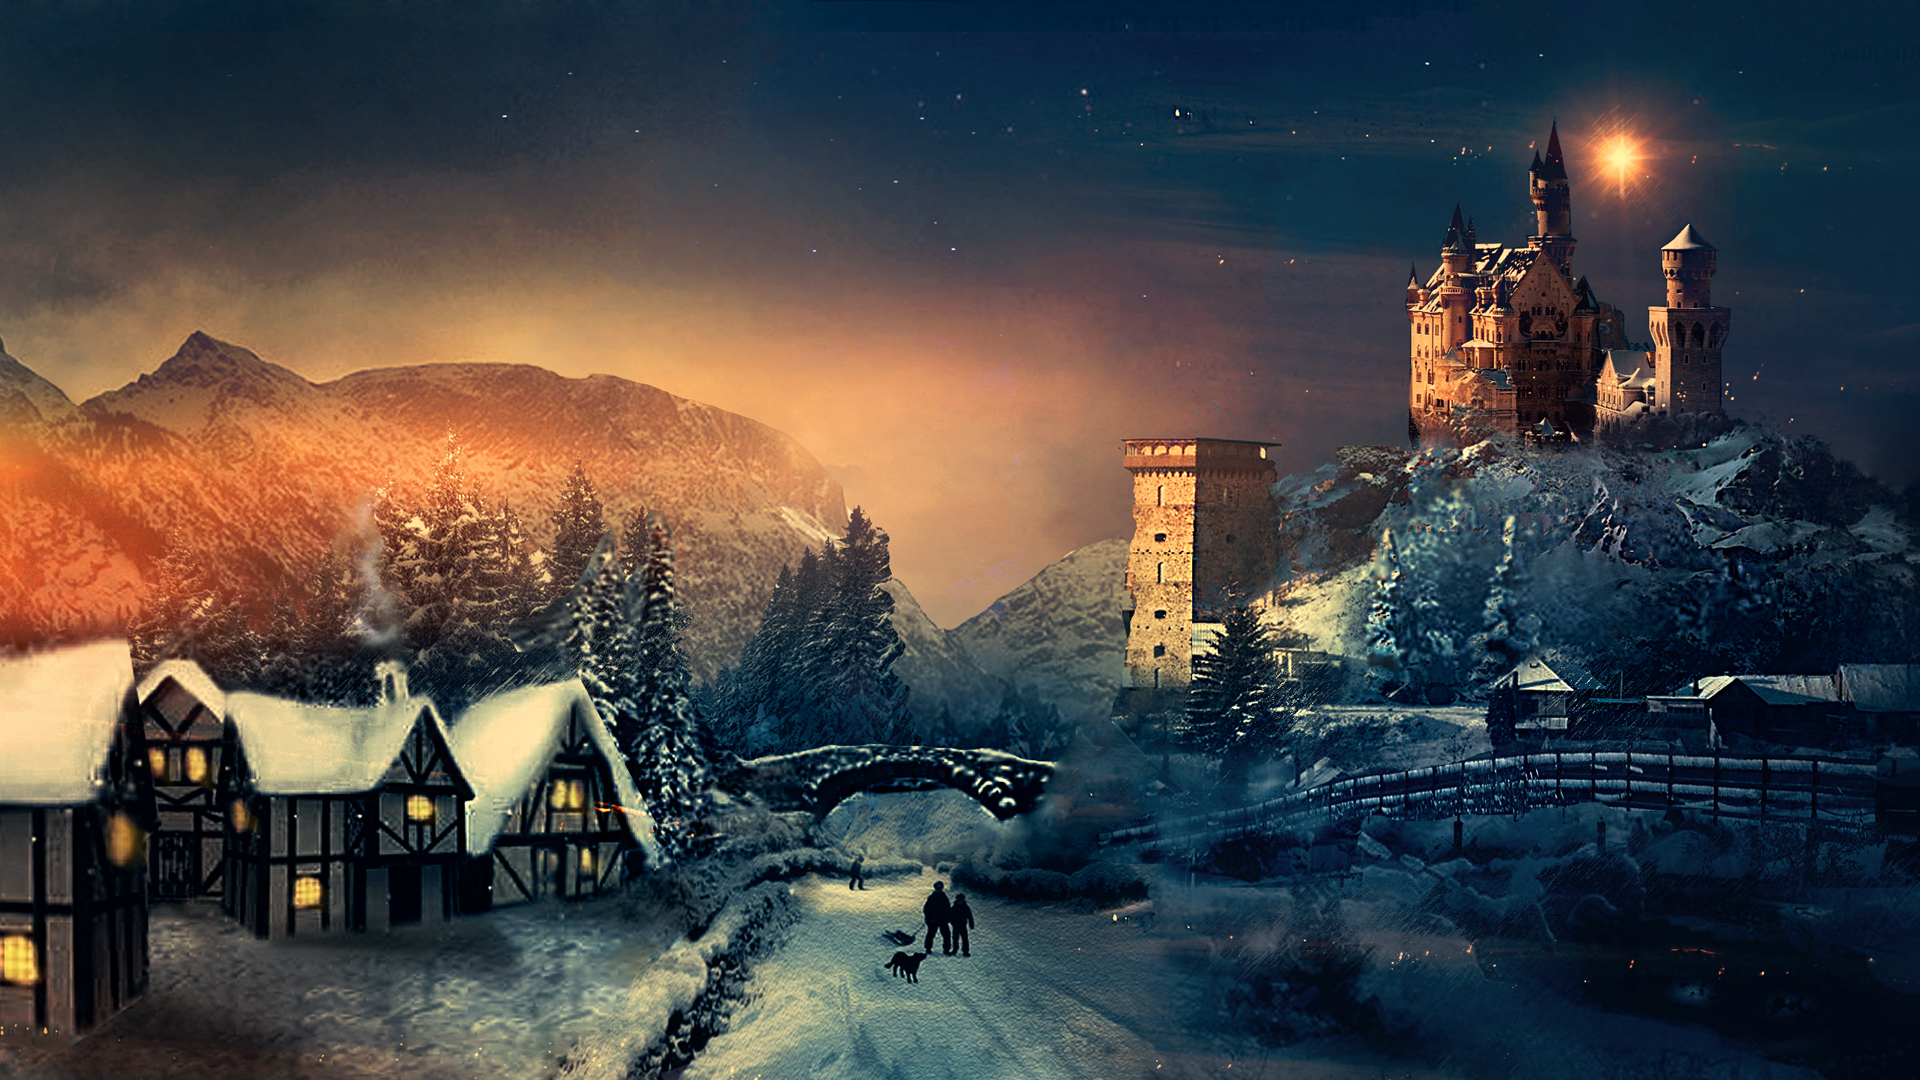 Walk In The City In The Winter Night